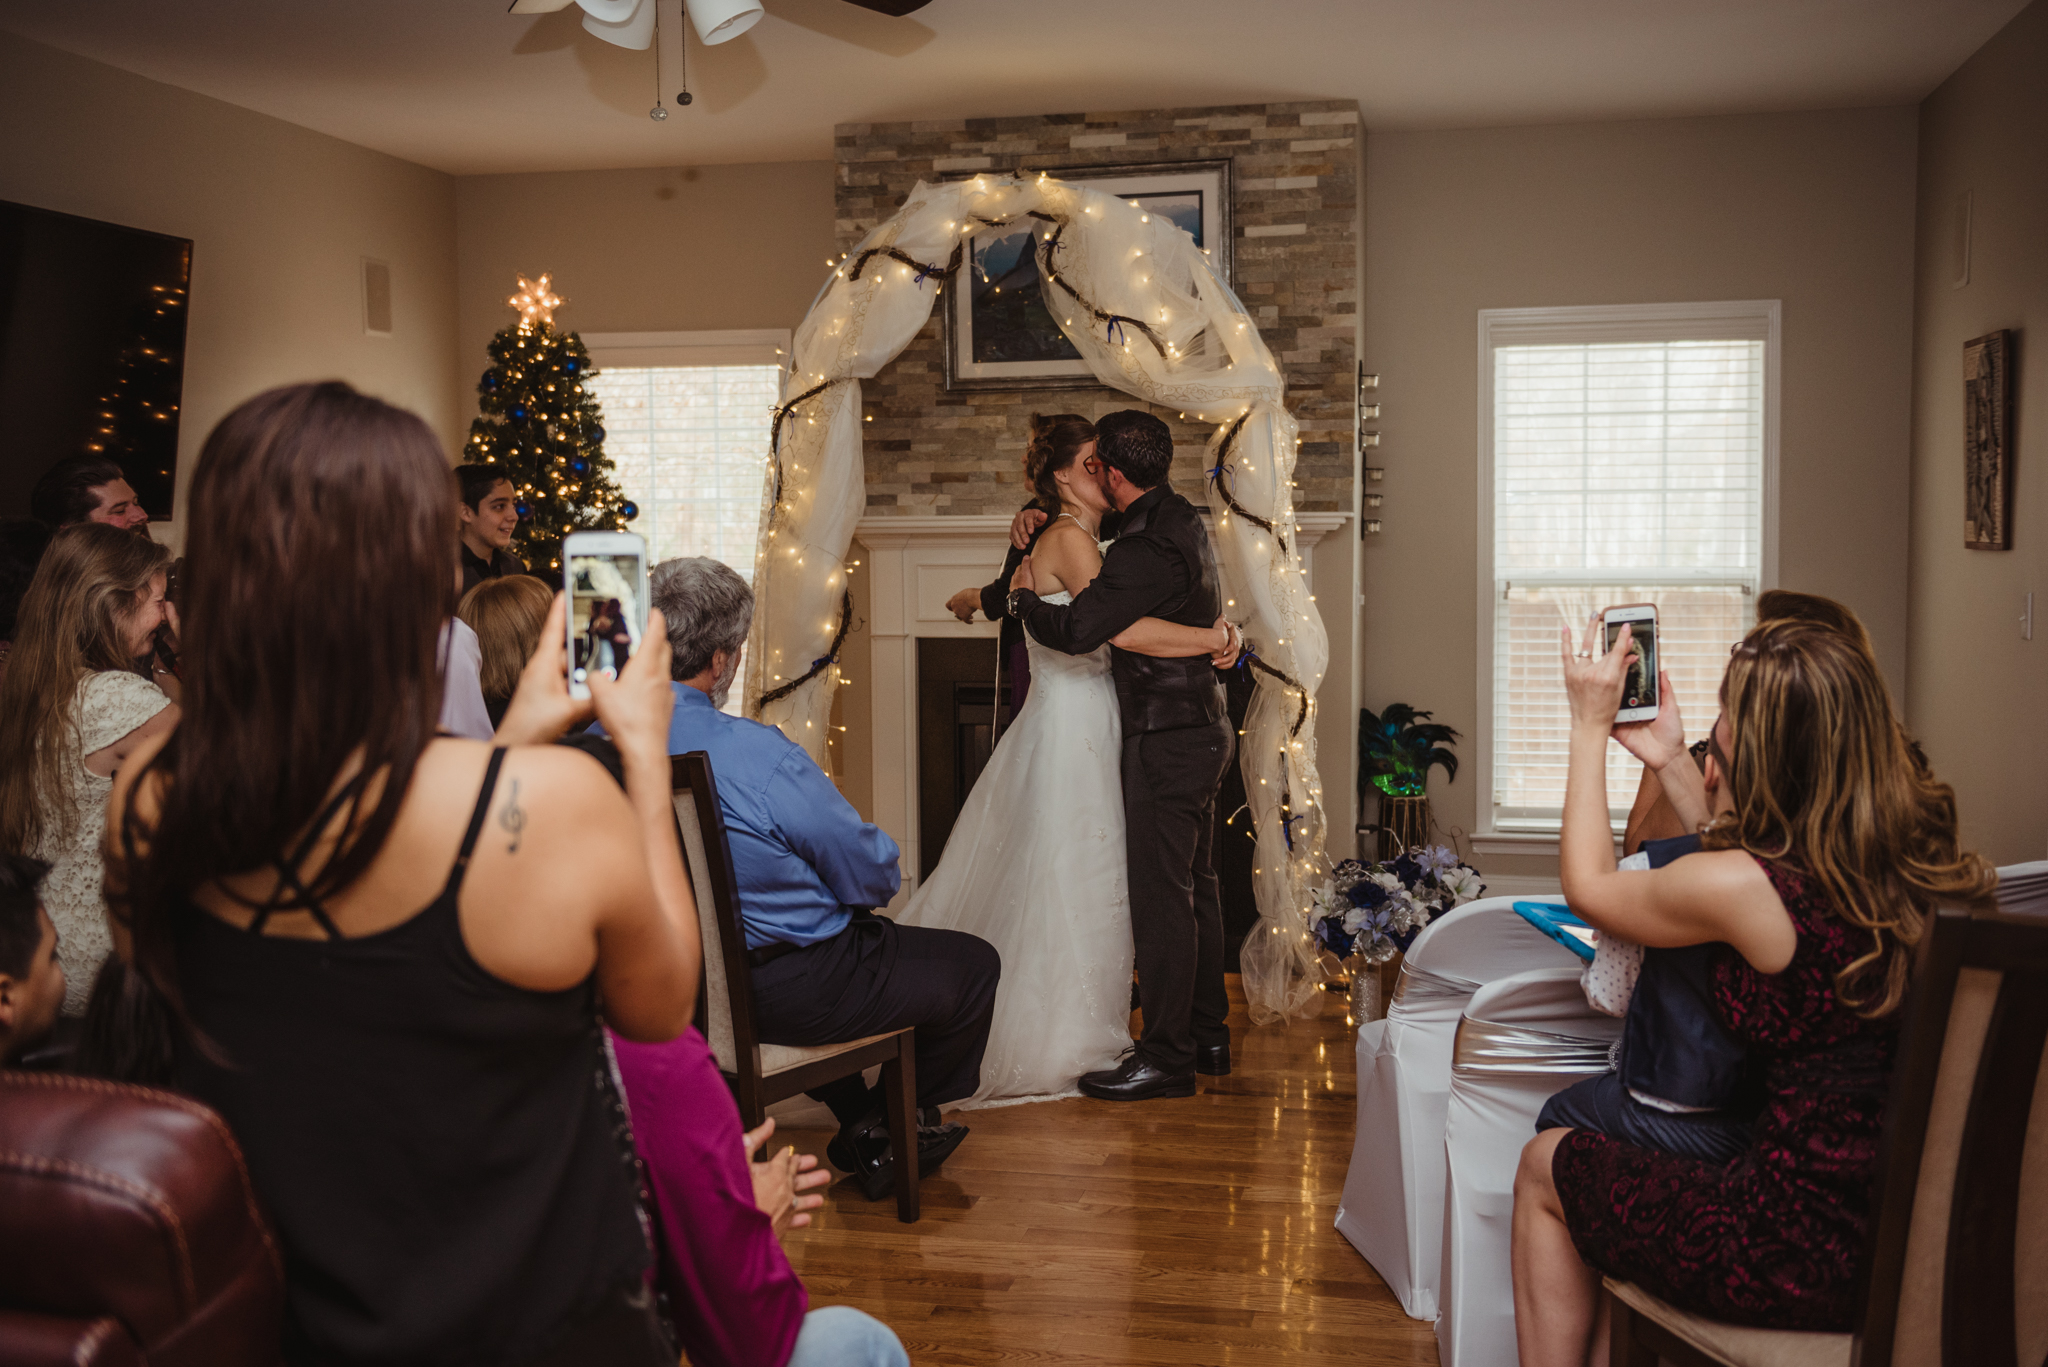 the-bride-and-groom-exchange-their-first-kiss-at-their-intimate-ceremony-at-their-home-in-Raleigh.jpg